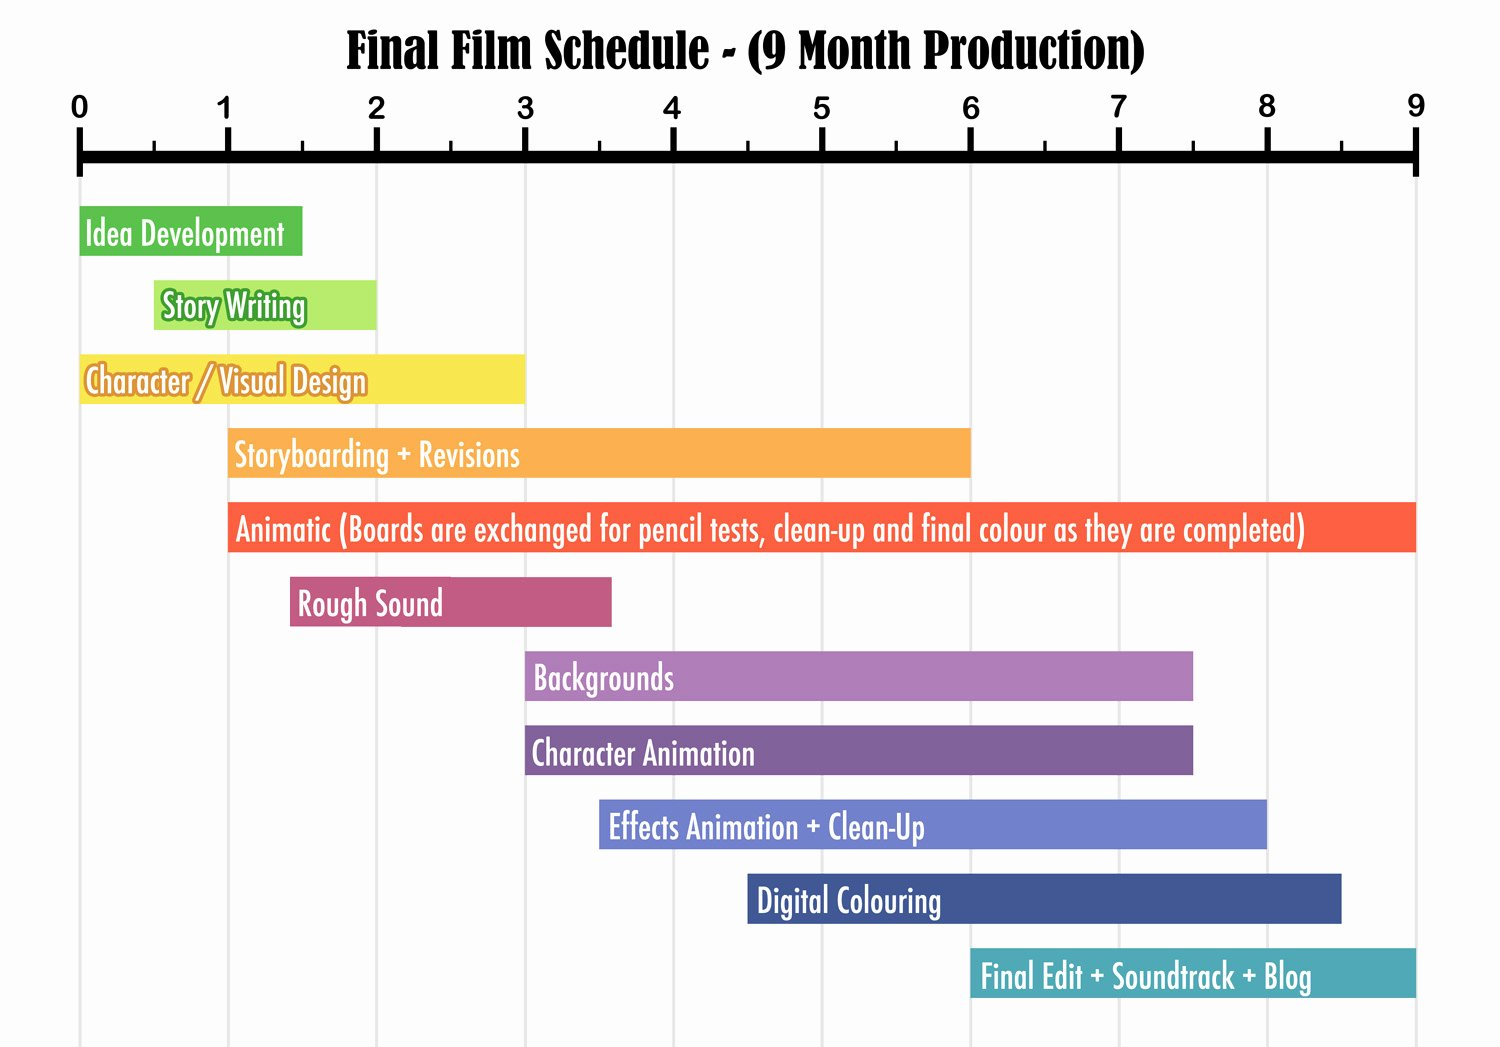 Film Production Schedule Template Luxury Acorns A Short Film by Gemma Roberts Schedule